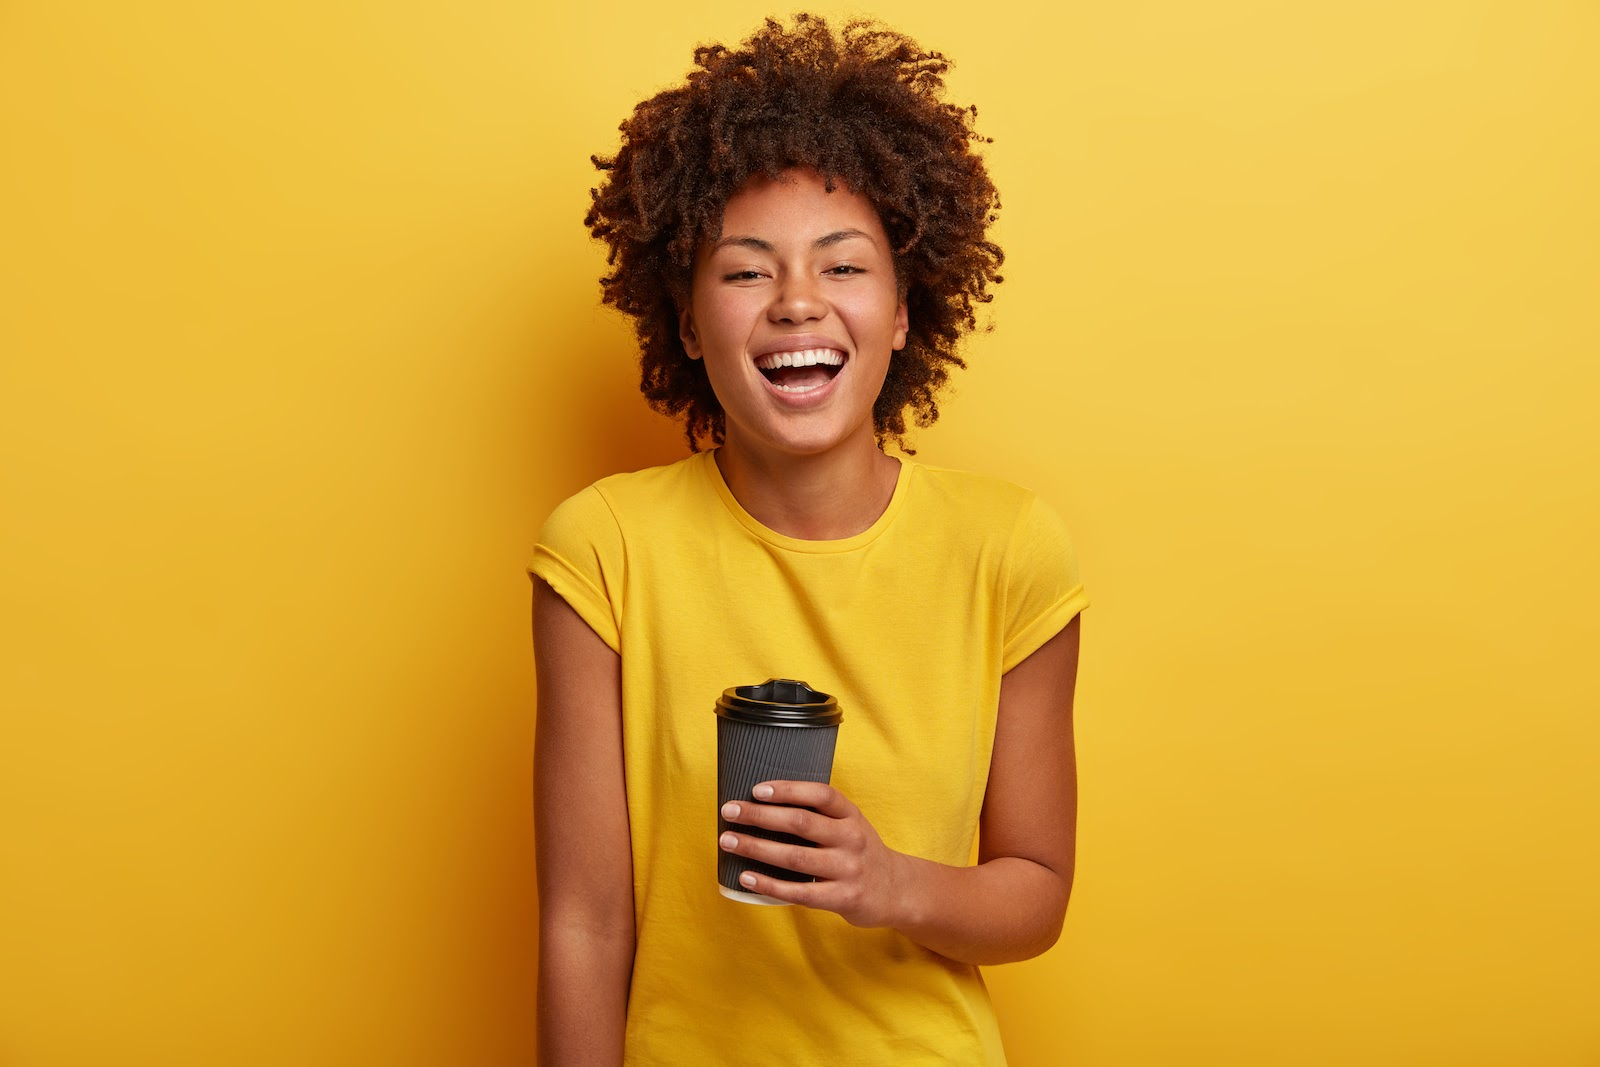 A woman holds a cup of coffee representing a virtual coffee event experience